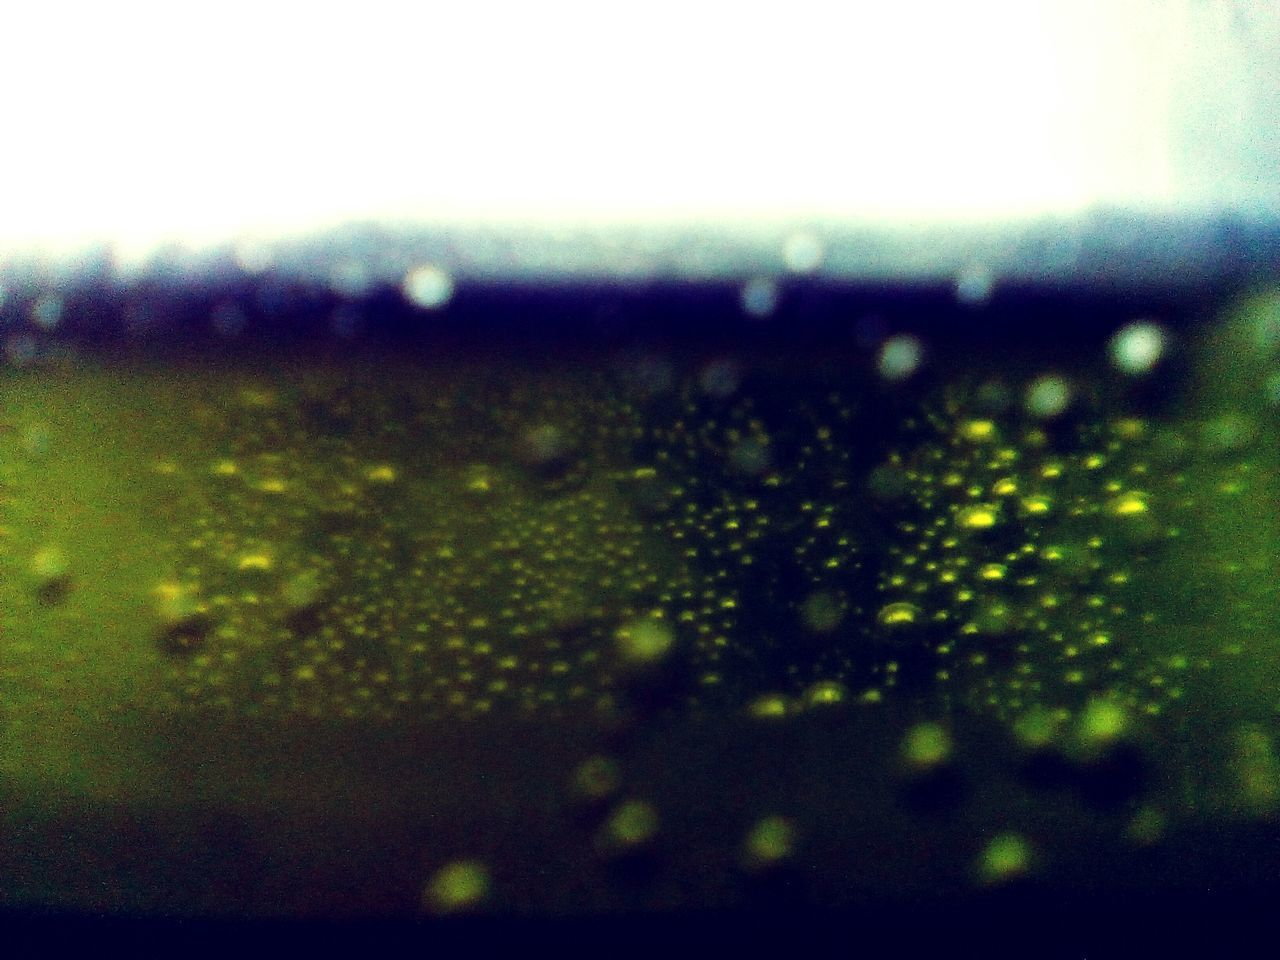 selective focus, close-up, no people, full frame, indoors, backgrounds, defocused, technology, illuminated, day, nature